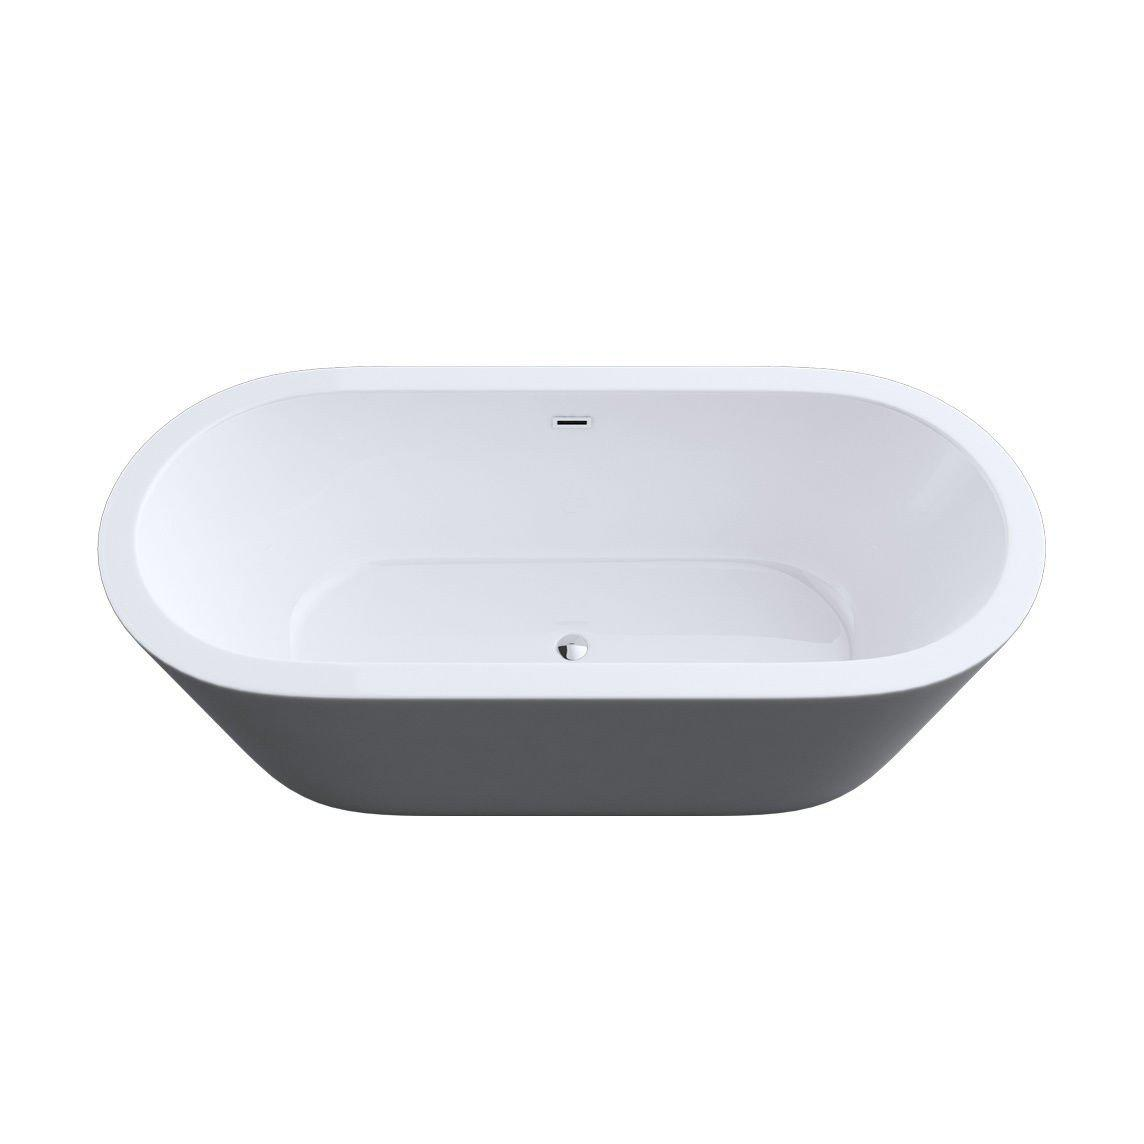 Vicenza 511 Freestanding Acrylic Bath Tub